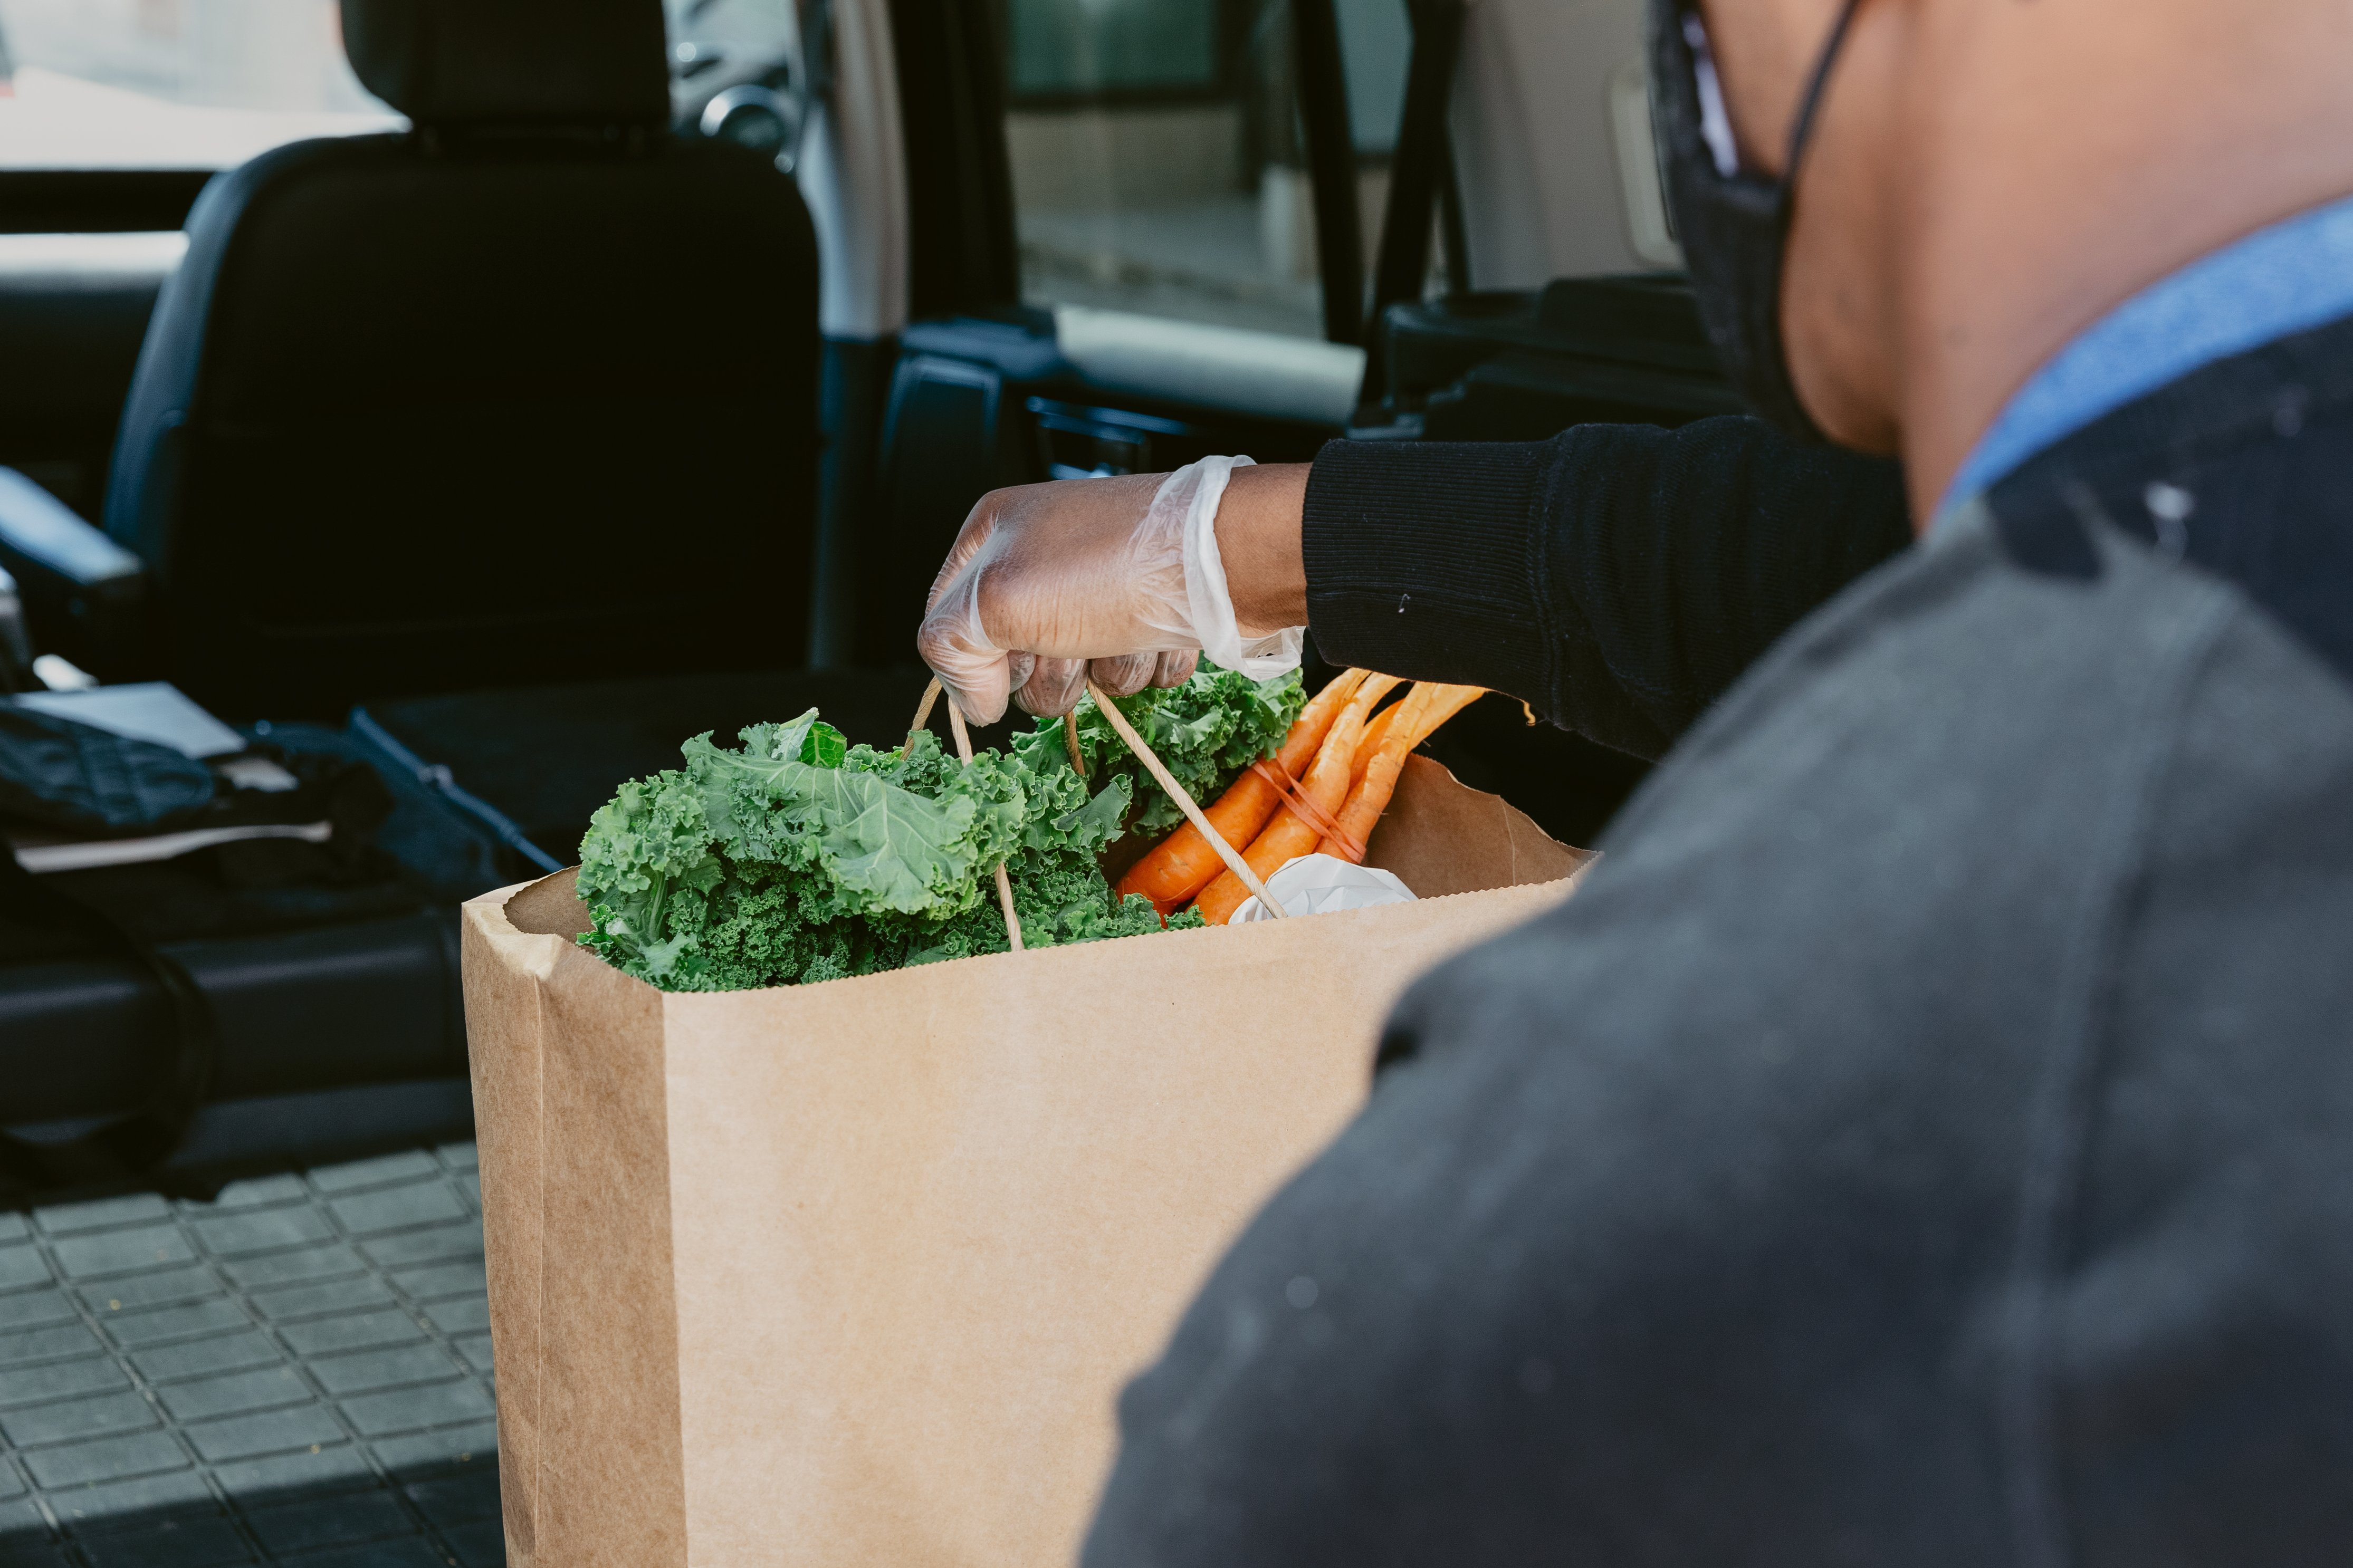 close-up-of-man-placing-groceries-in-back-of-car